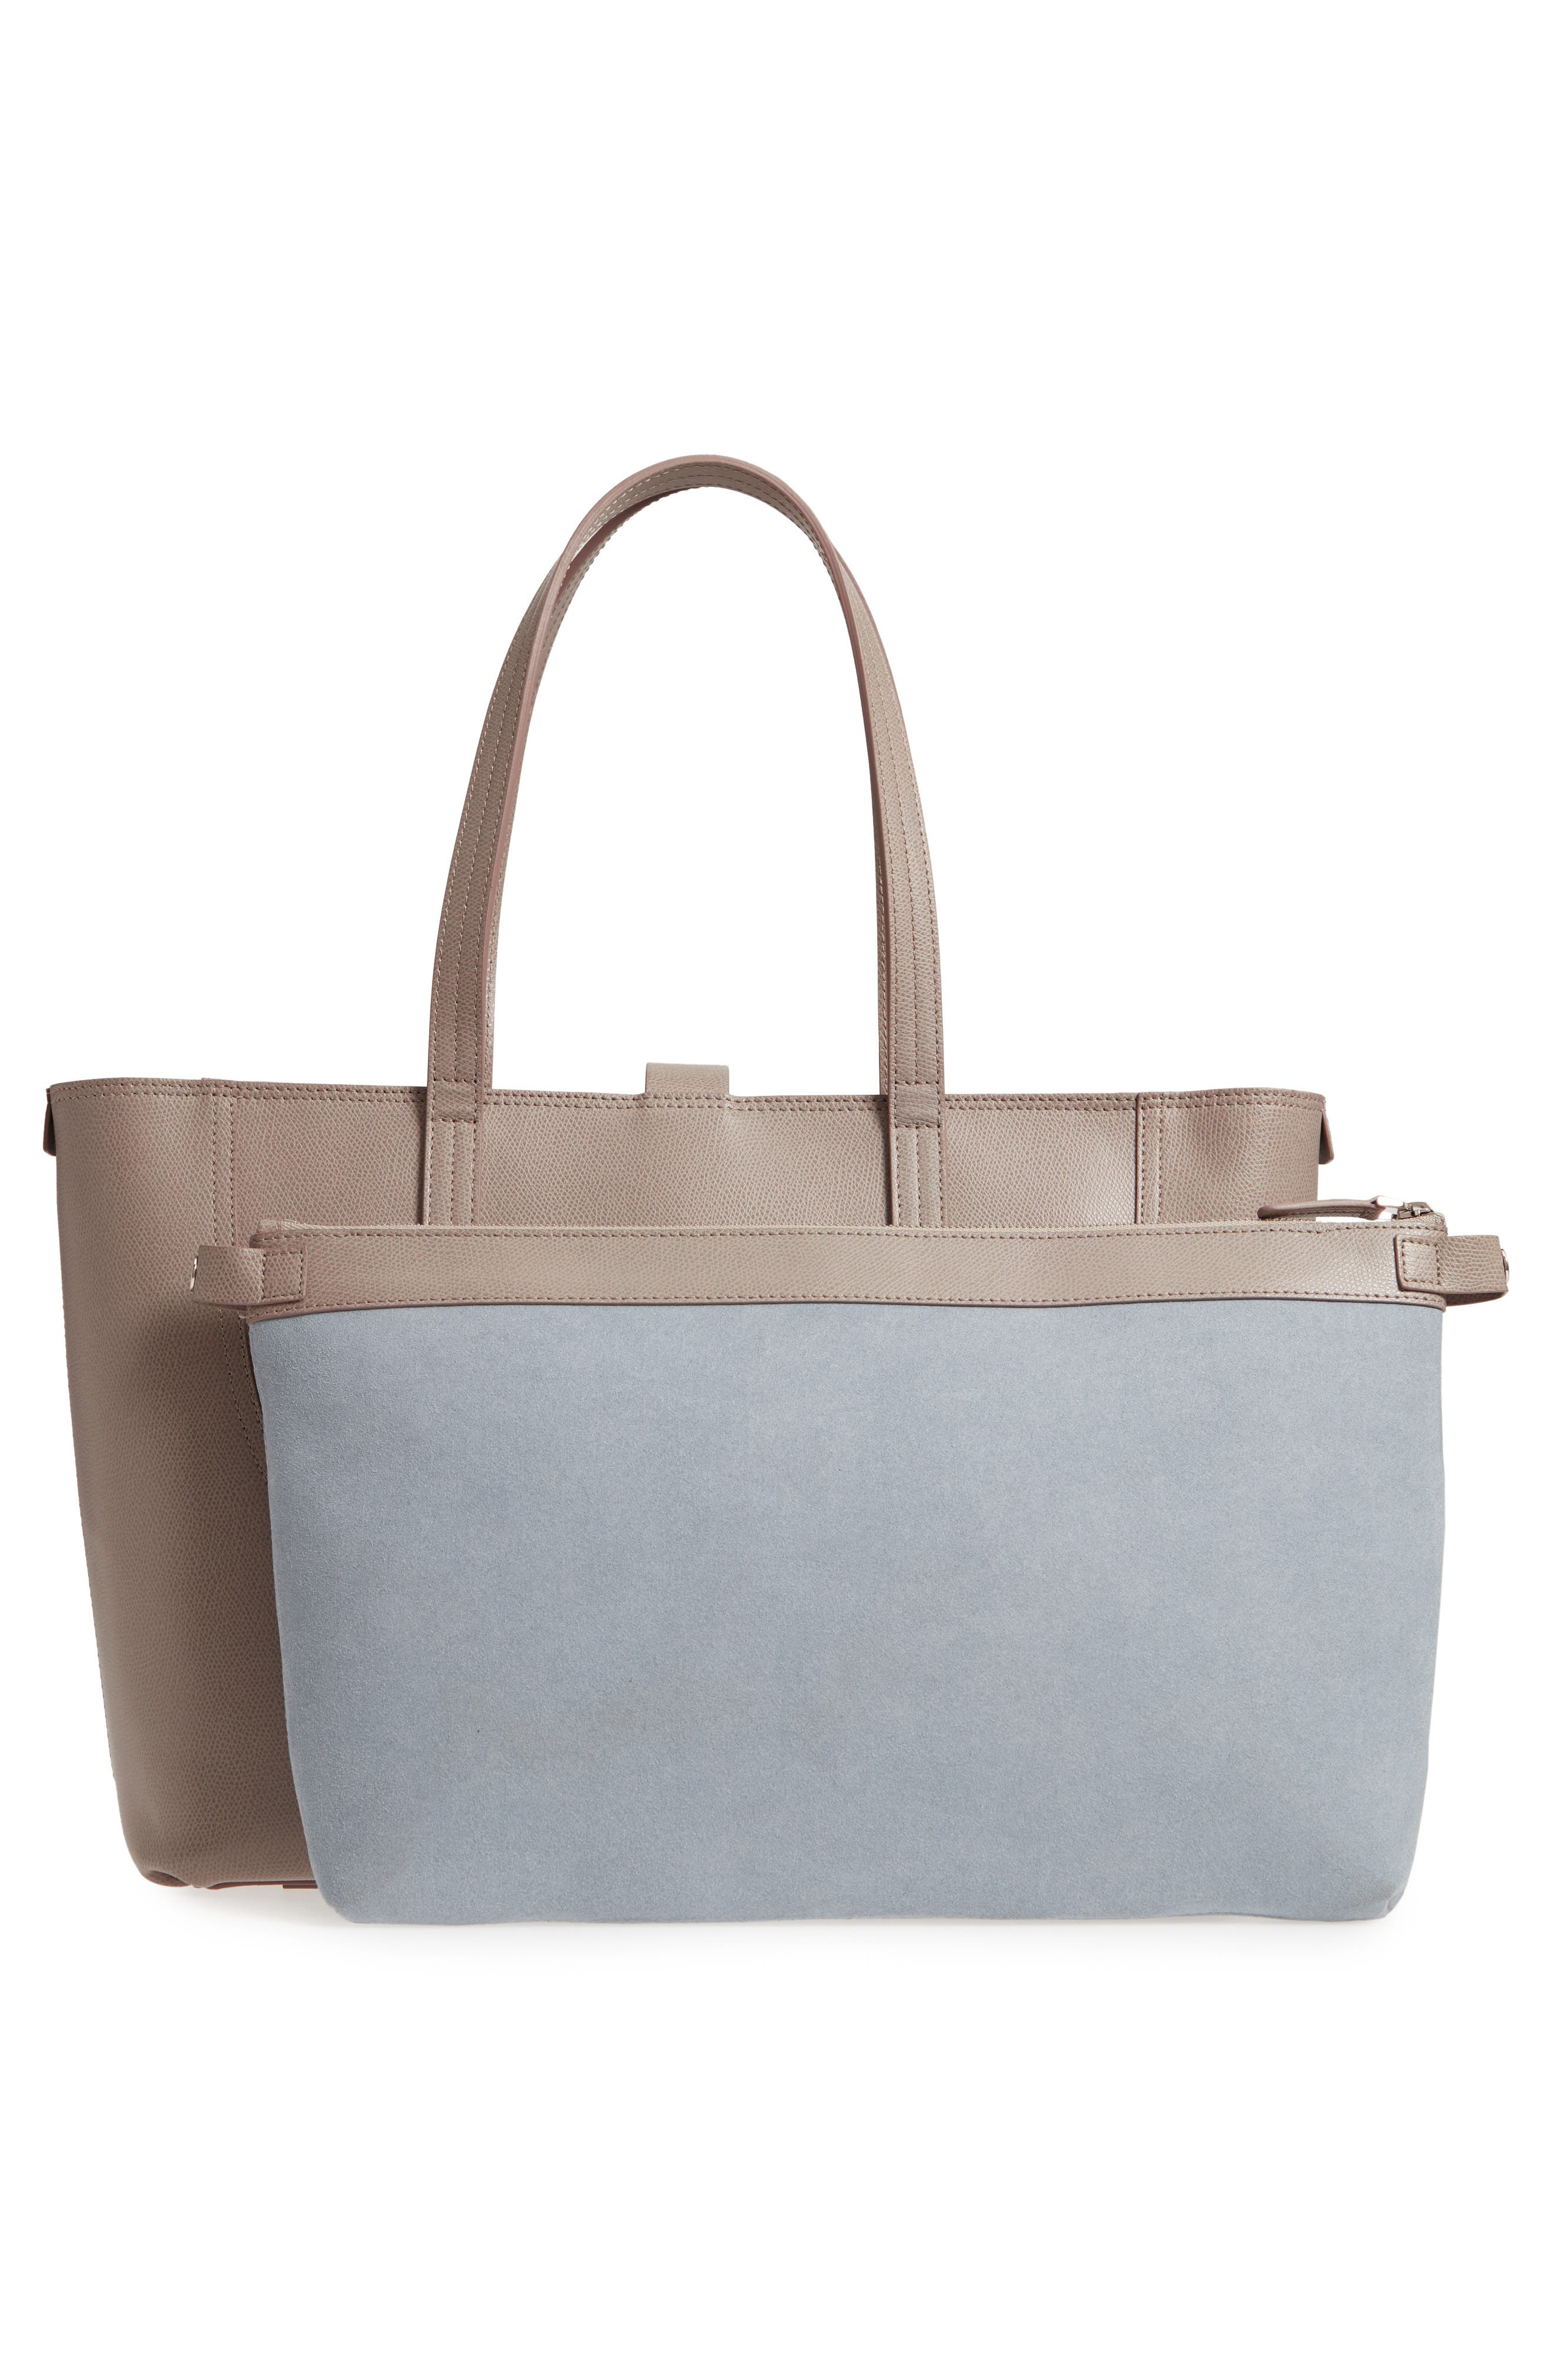 Voya Pebbled Leather Tote,                             Alternate thumbnail 3, color,                             SAND